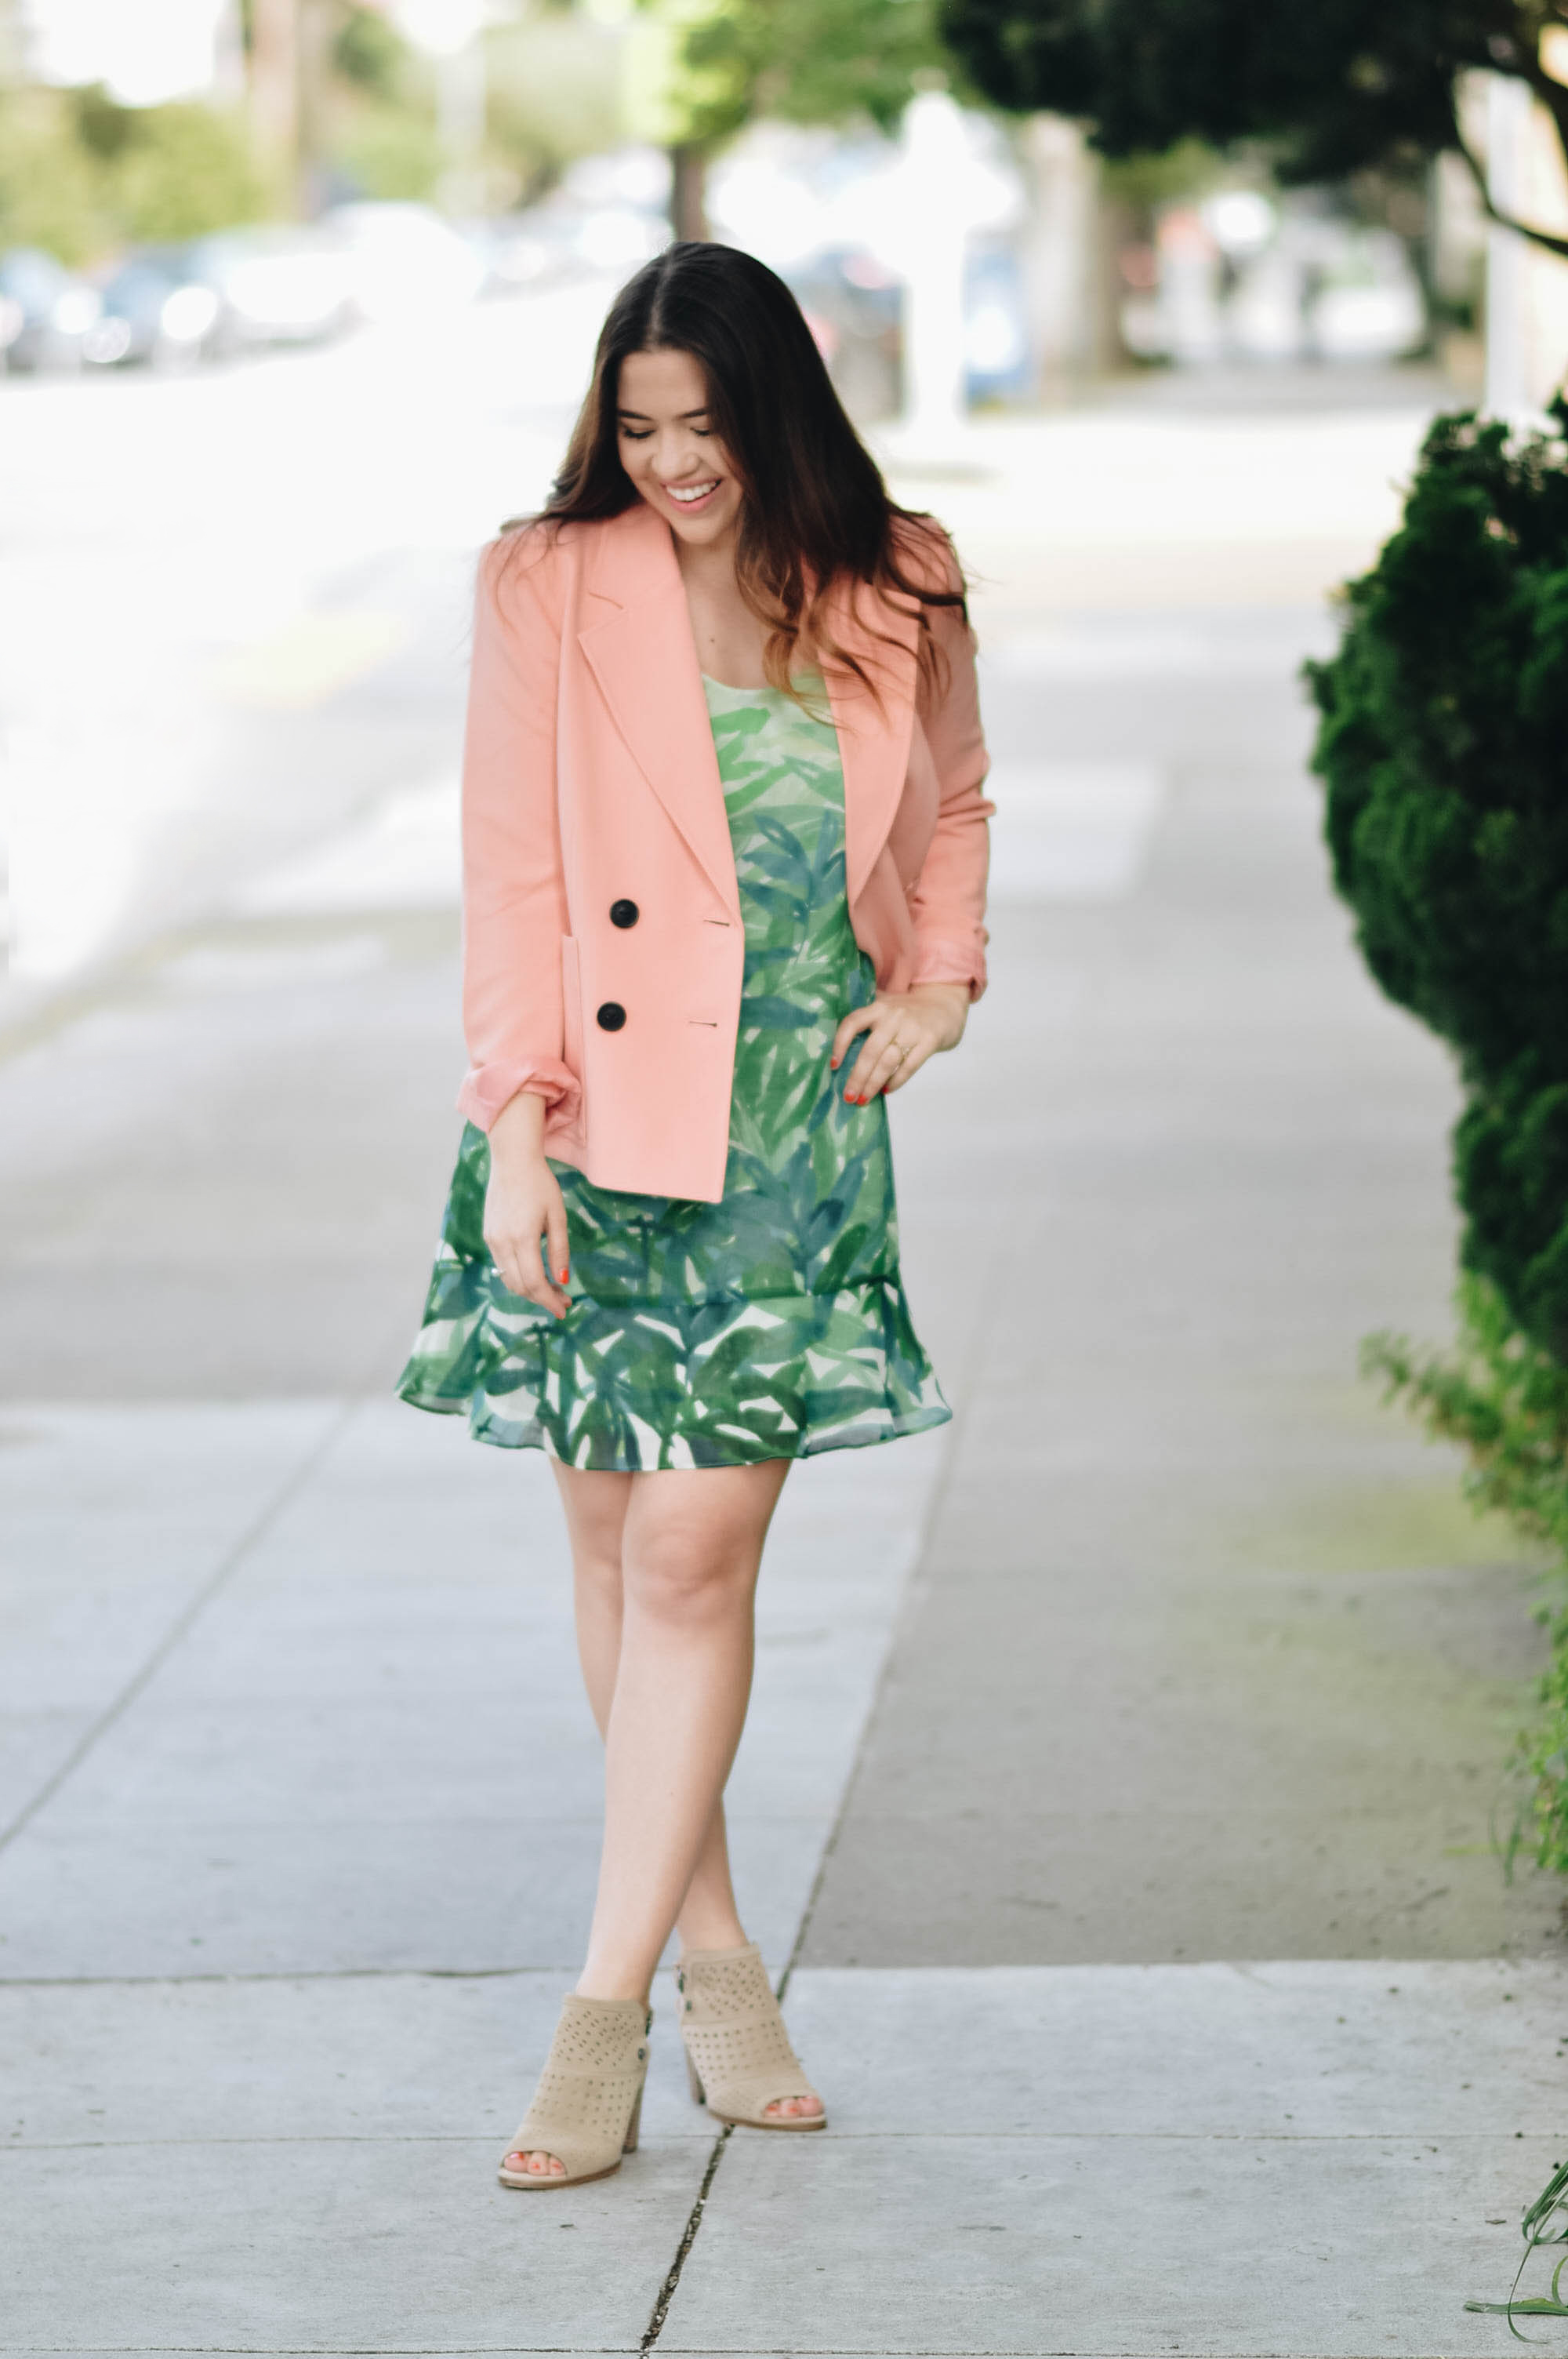 5 Things I Love About Spring with Cabi via. www.birdieshoots.com